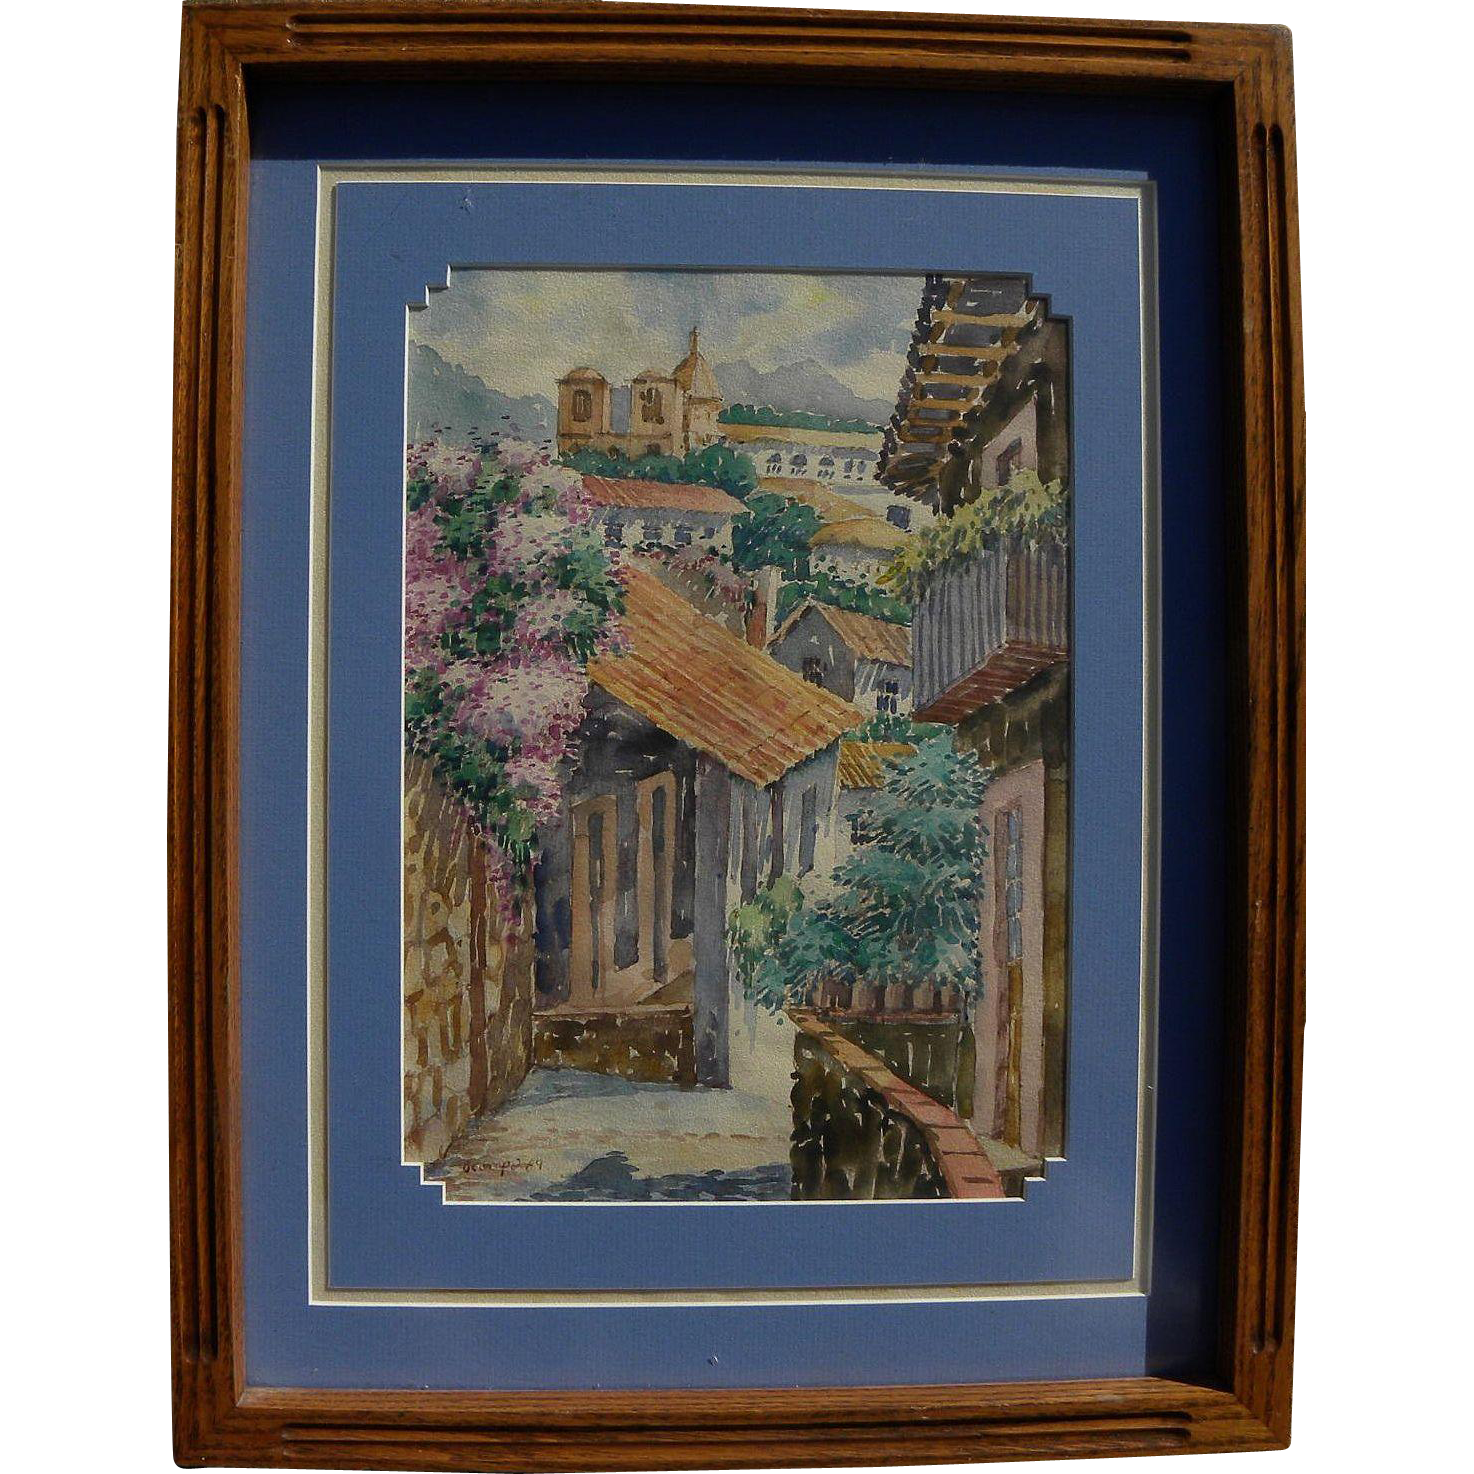 Signed South American or Mexican watercolor of church and rooftops